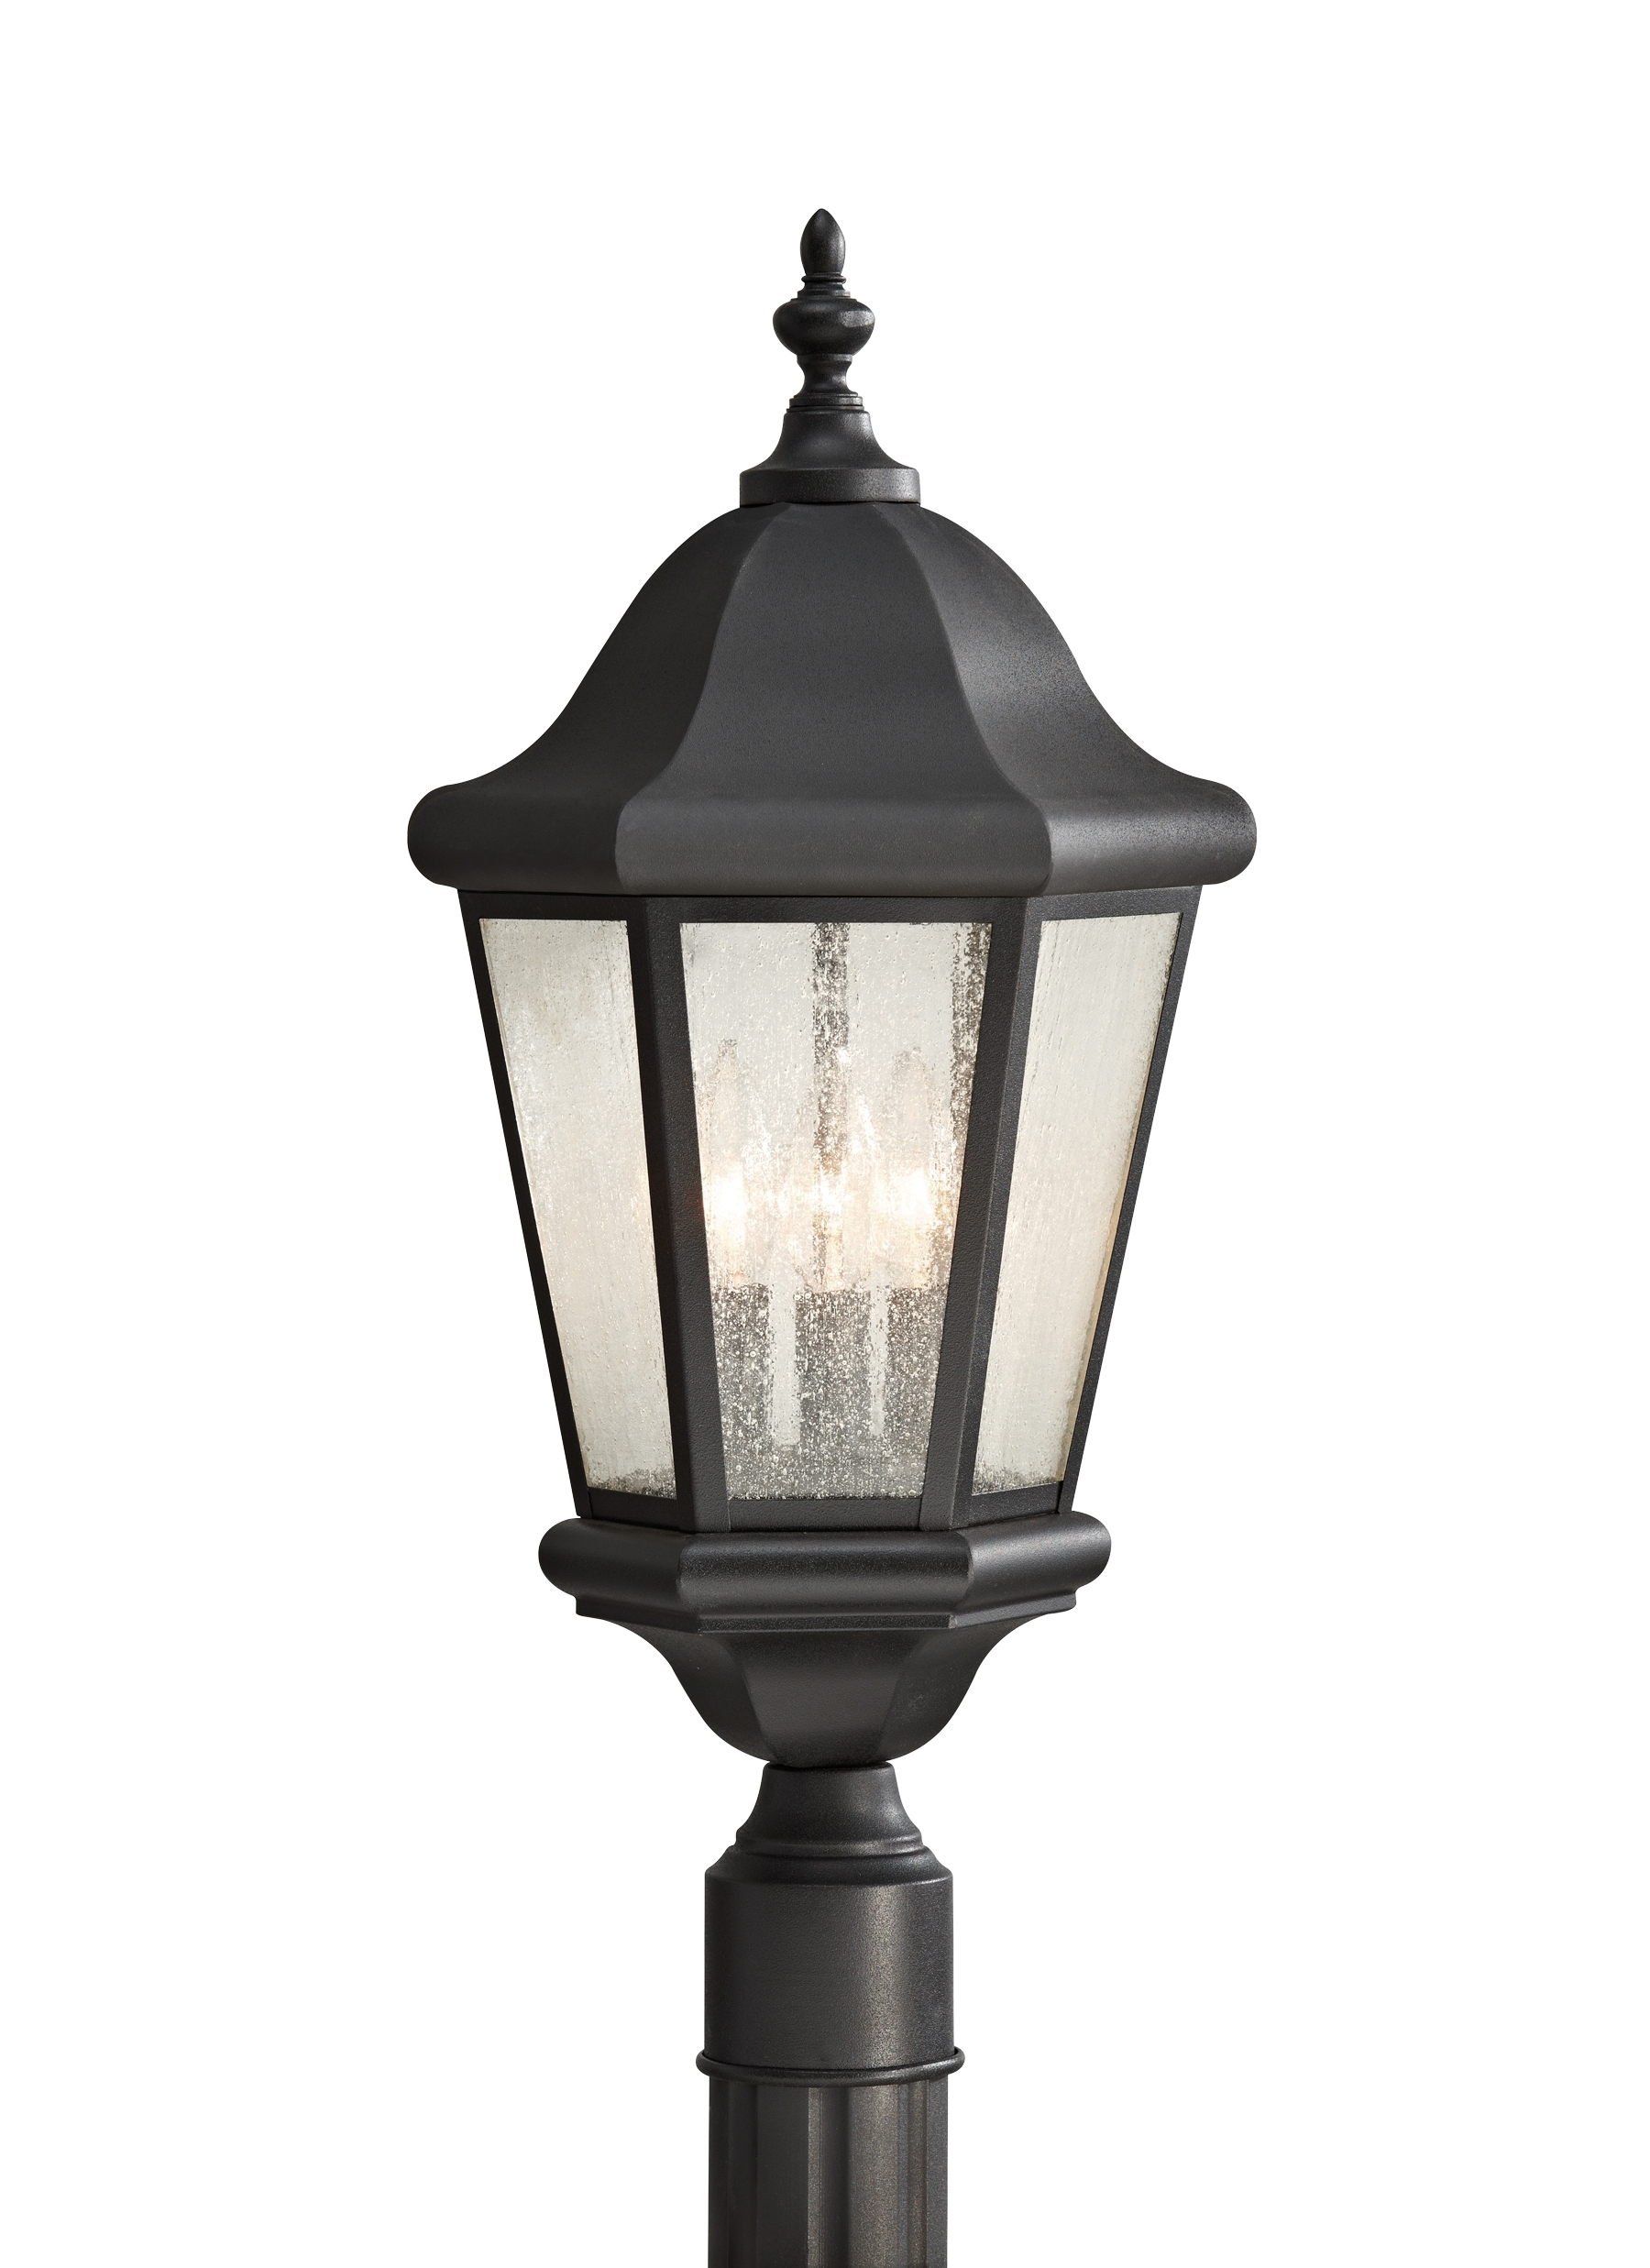 Ol5907bk,3 Light Outdoor Lantern,black With Well Known Outdoor Lanterns On Stands (View 15 of 20)